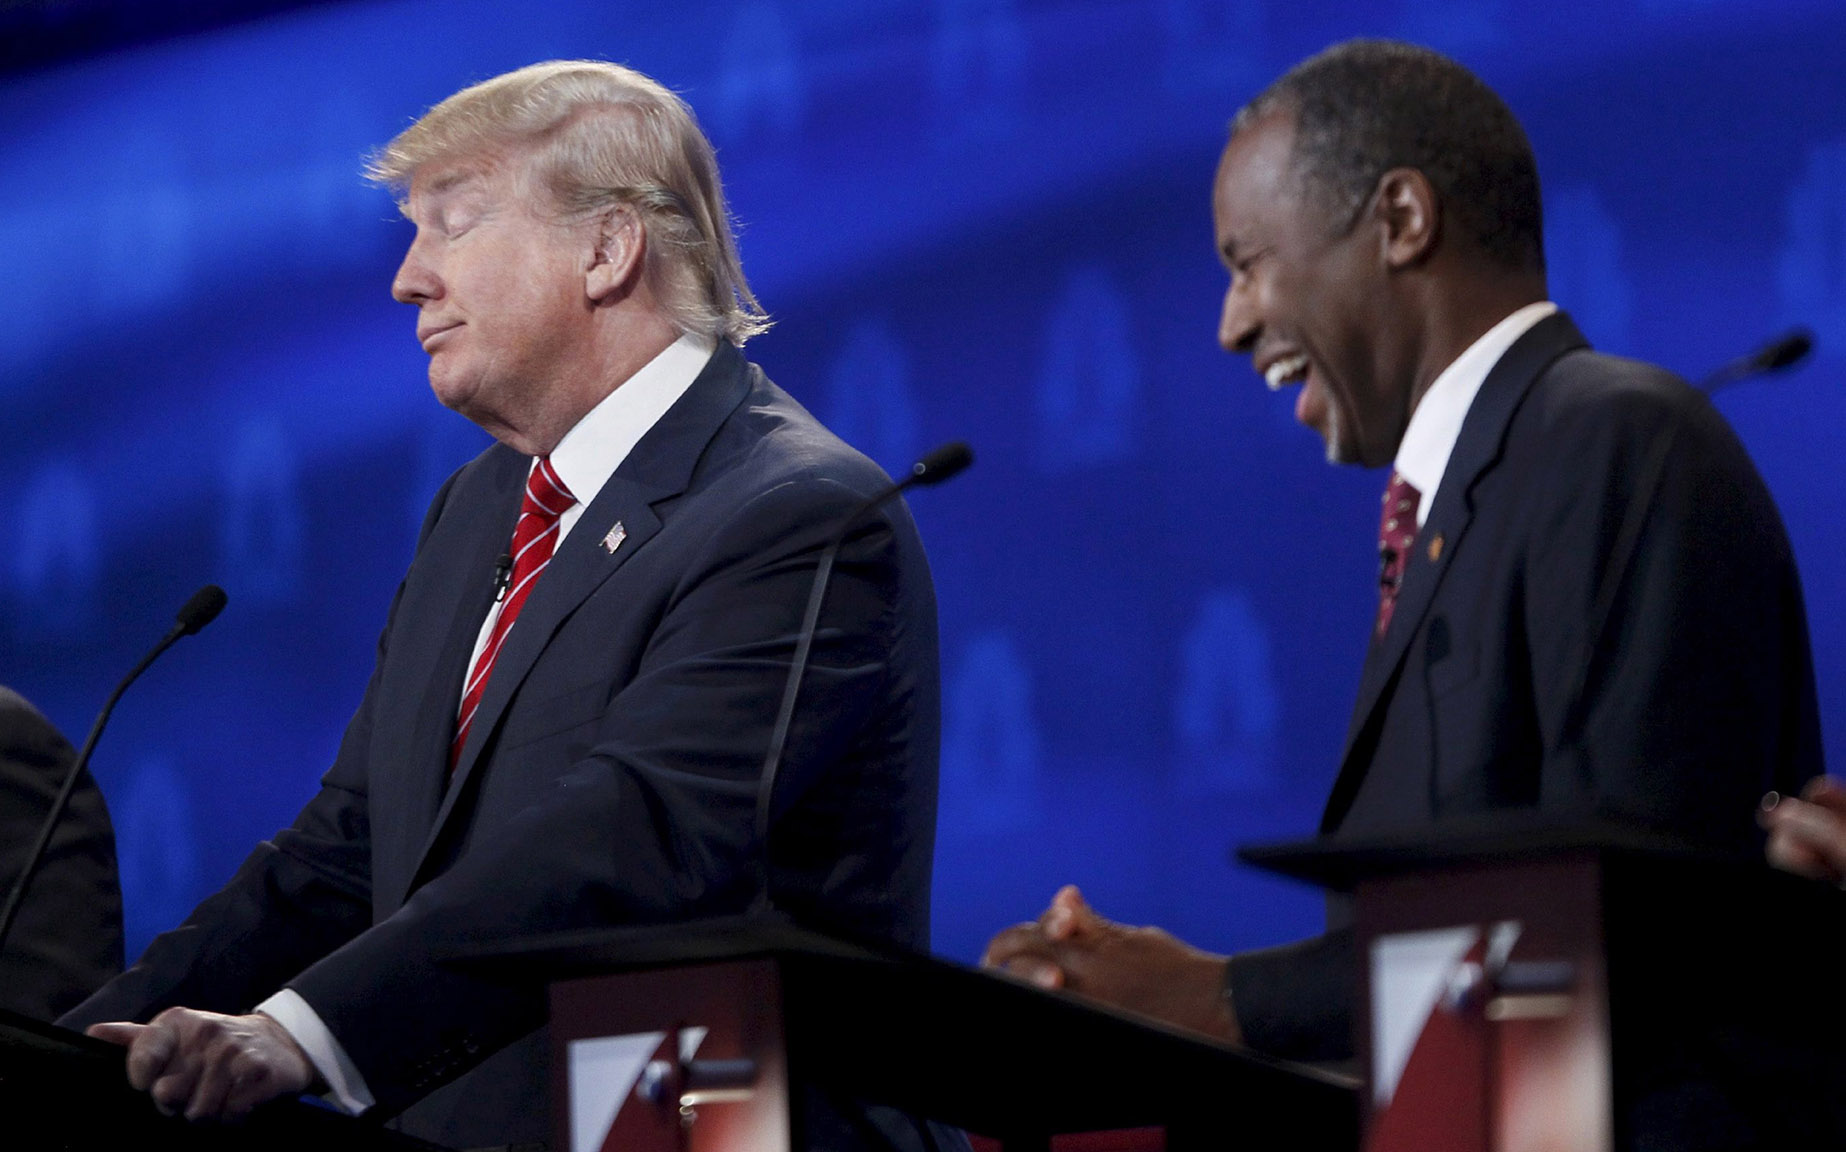 Republican U.S. presidential candidate Carson laughs at an answer from Trump at the 2016 U.S. Republican presidential candidates debate held by CNBC in Boulder